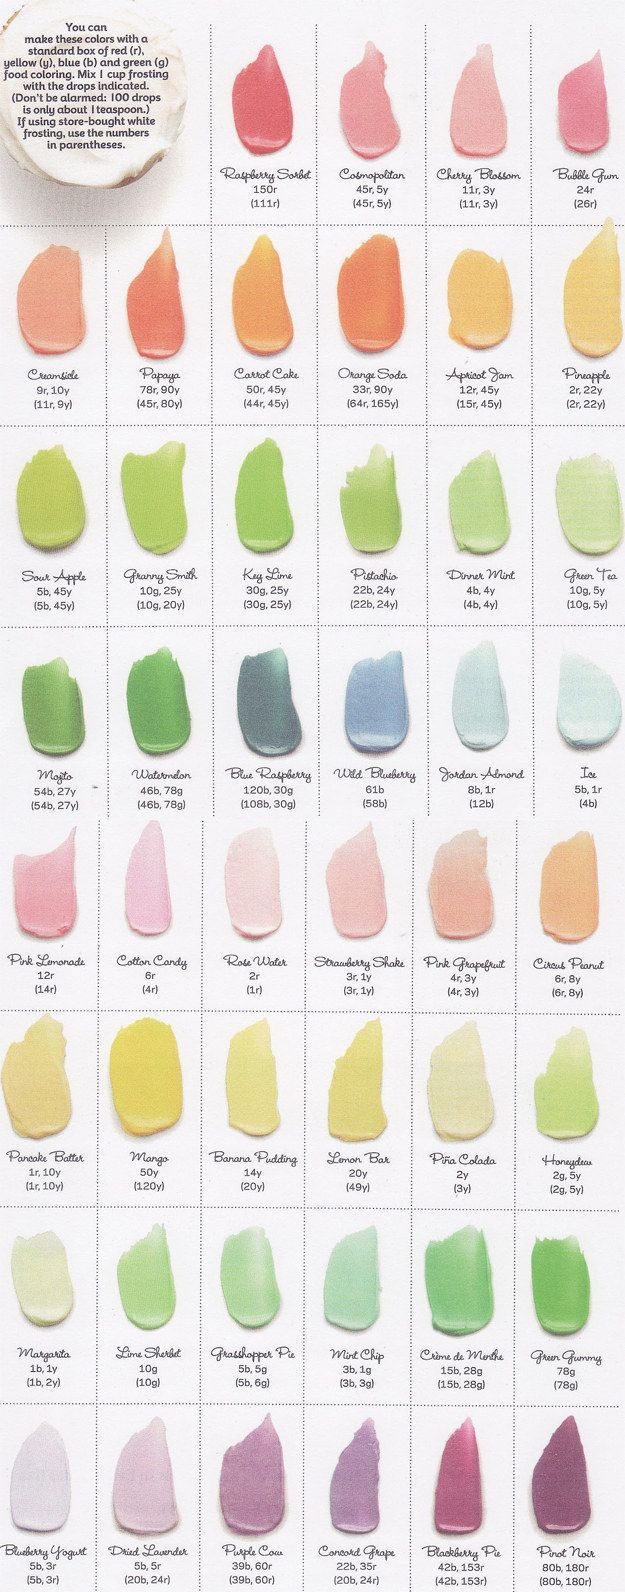 How to make frosting colors - Food Coloring Guide